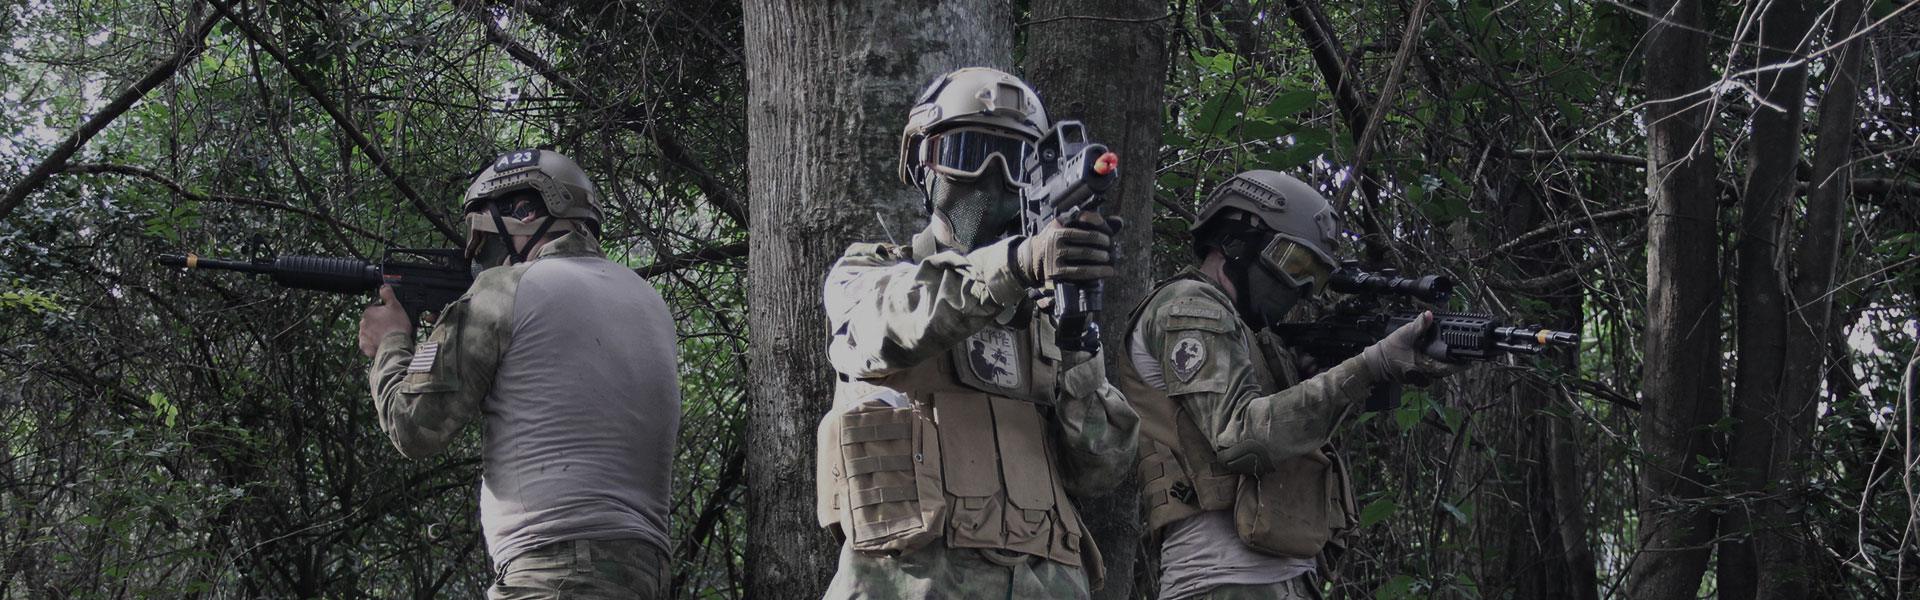 airsoft-banner3-2